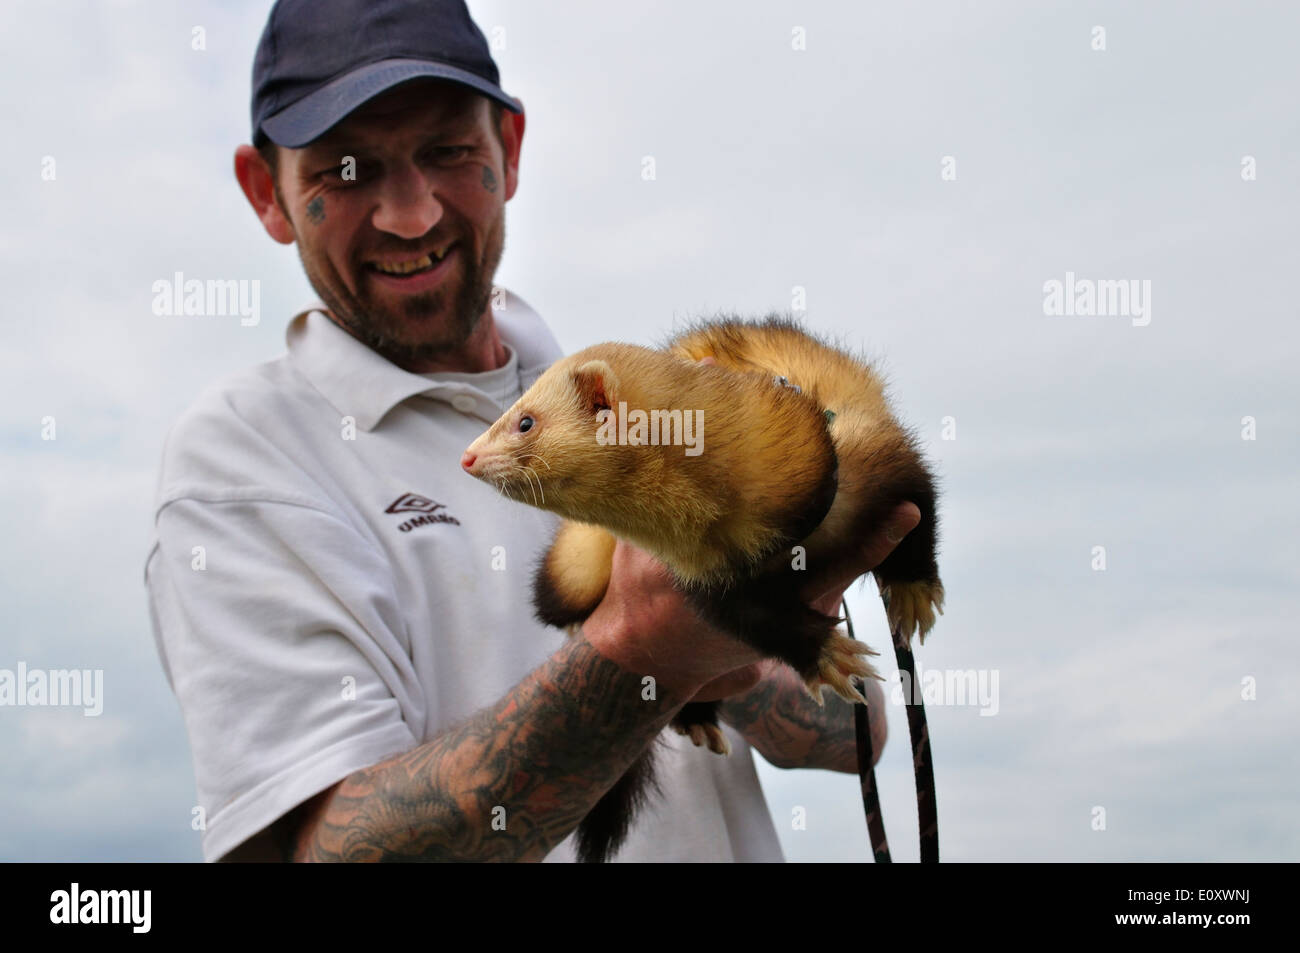 British man with tattoos on his face and arms,wearing a peak cap,holding his pet ferret.Lawford,Essex,UK - Stock Image